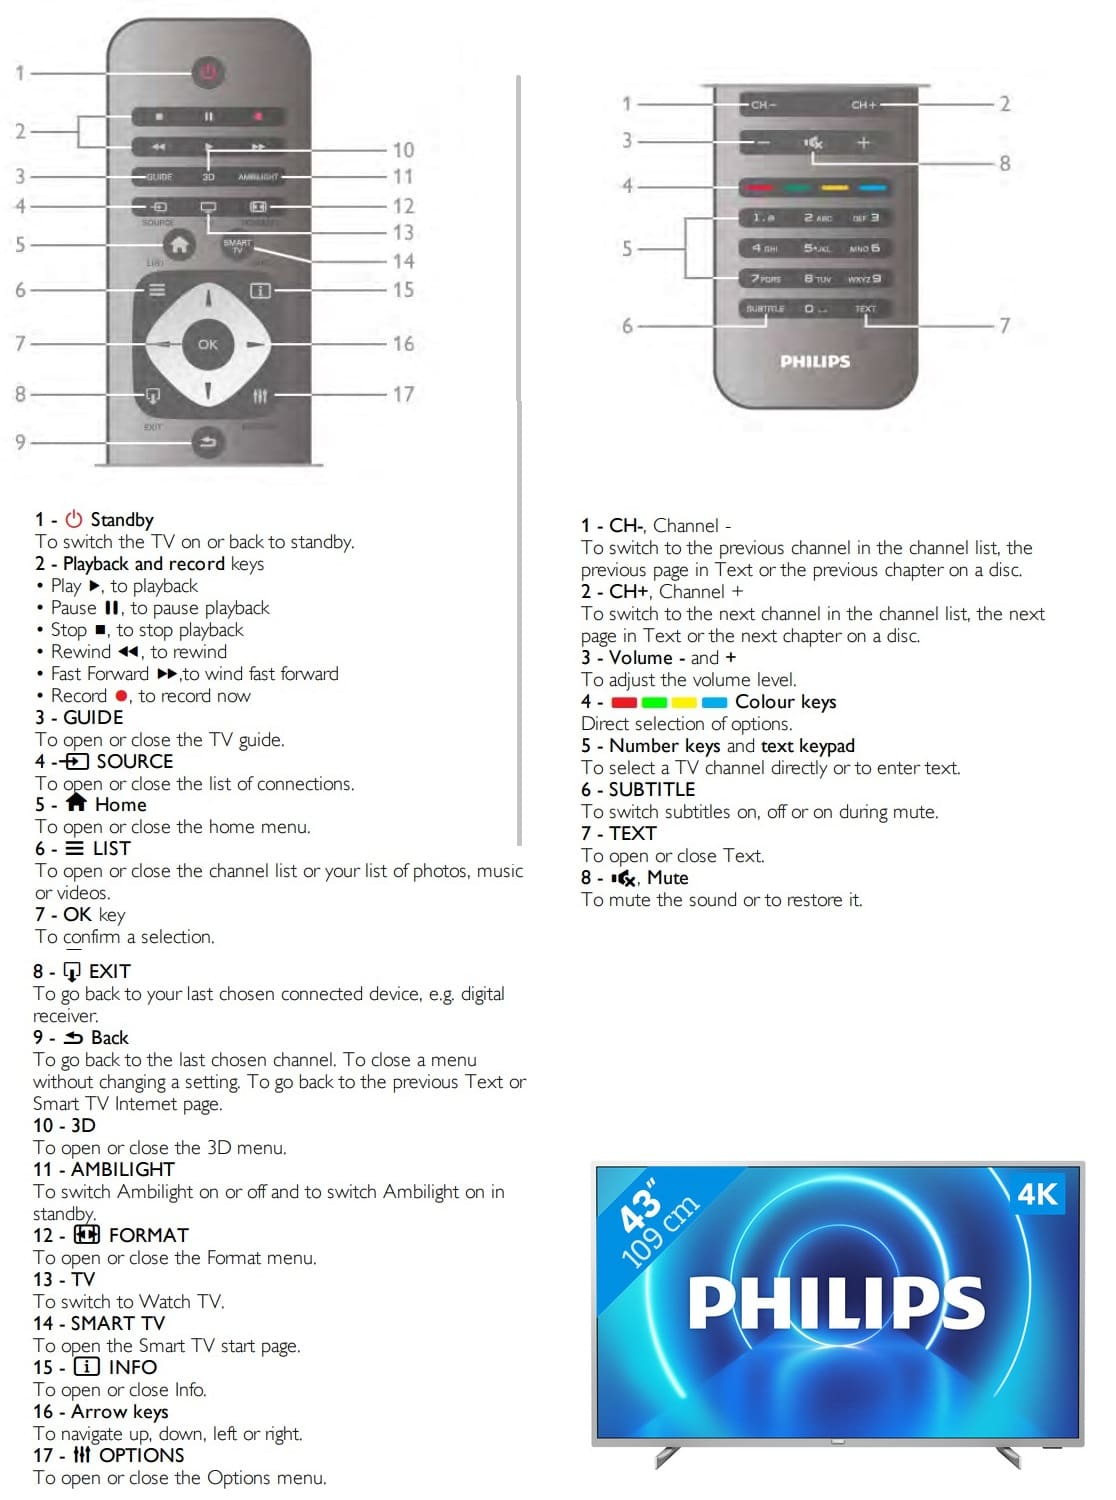 Philips TV Remote Control Symbols Meaning